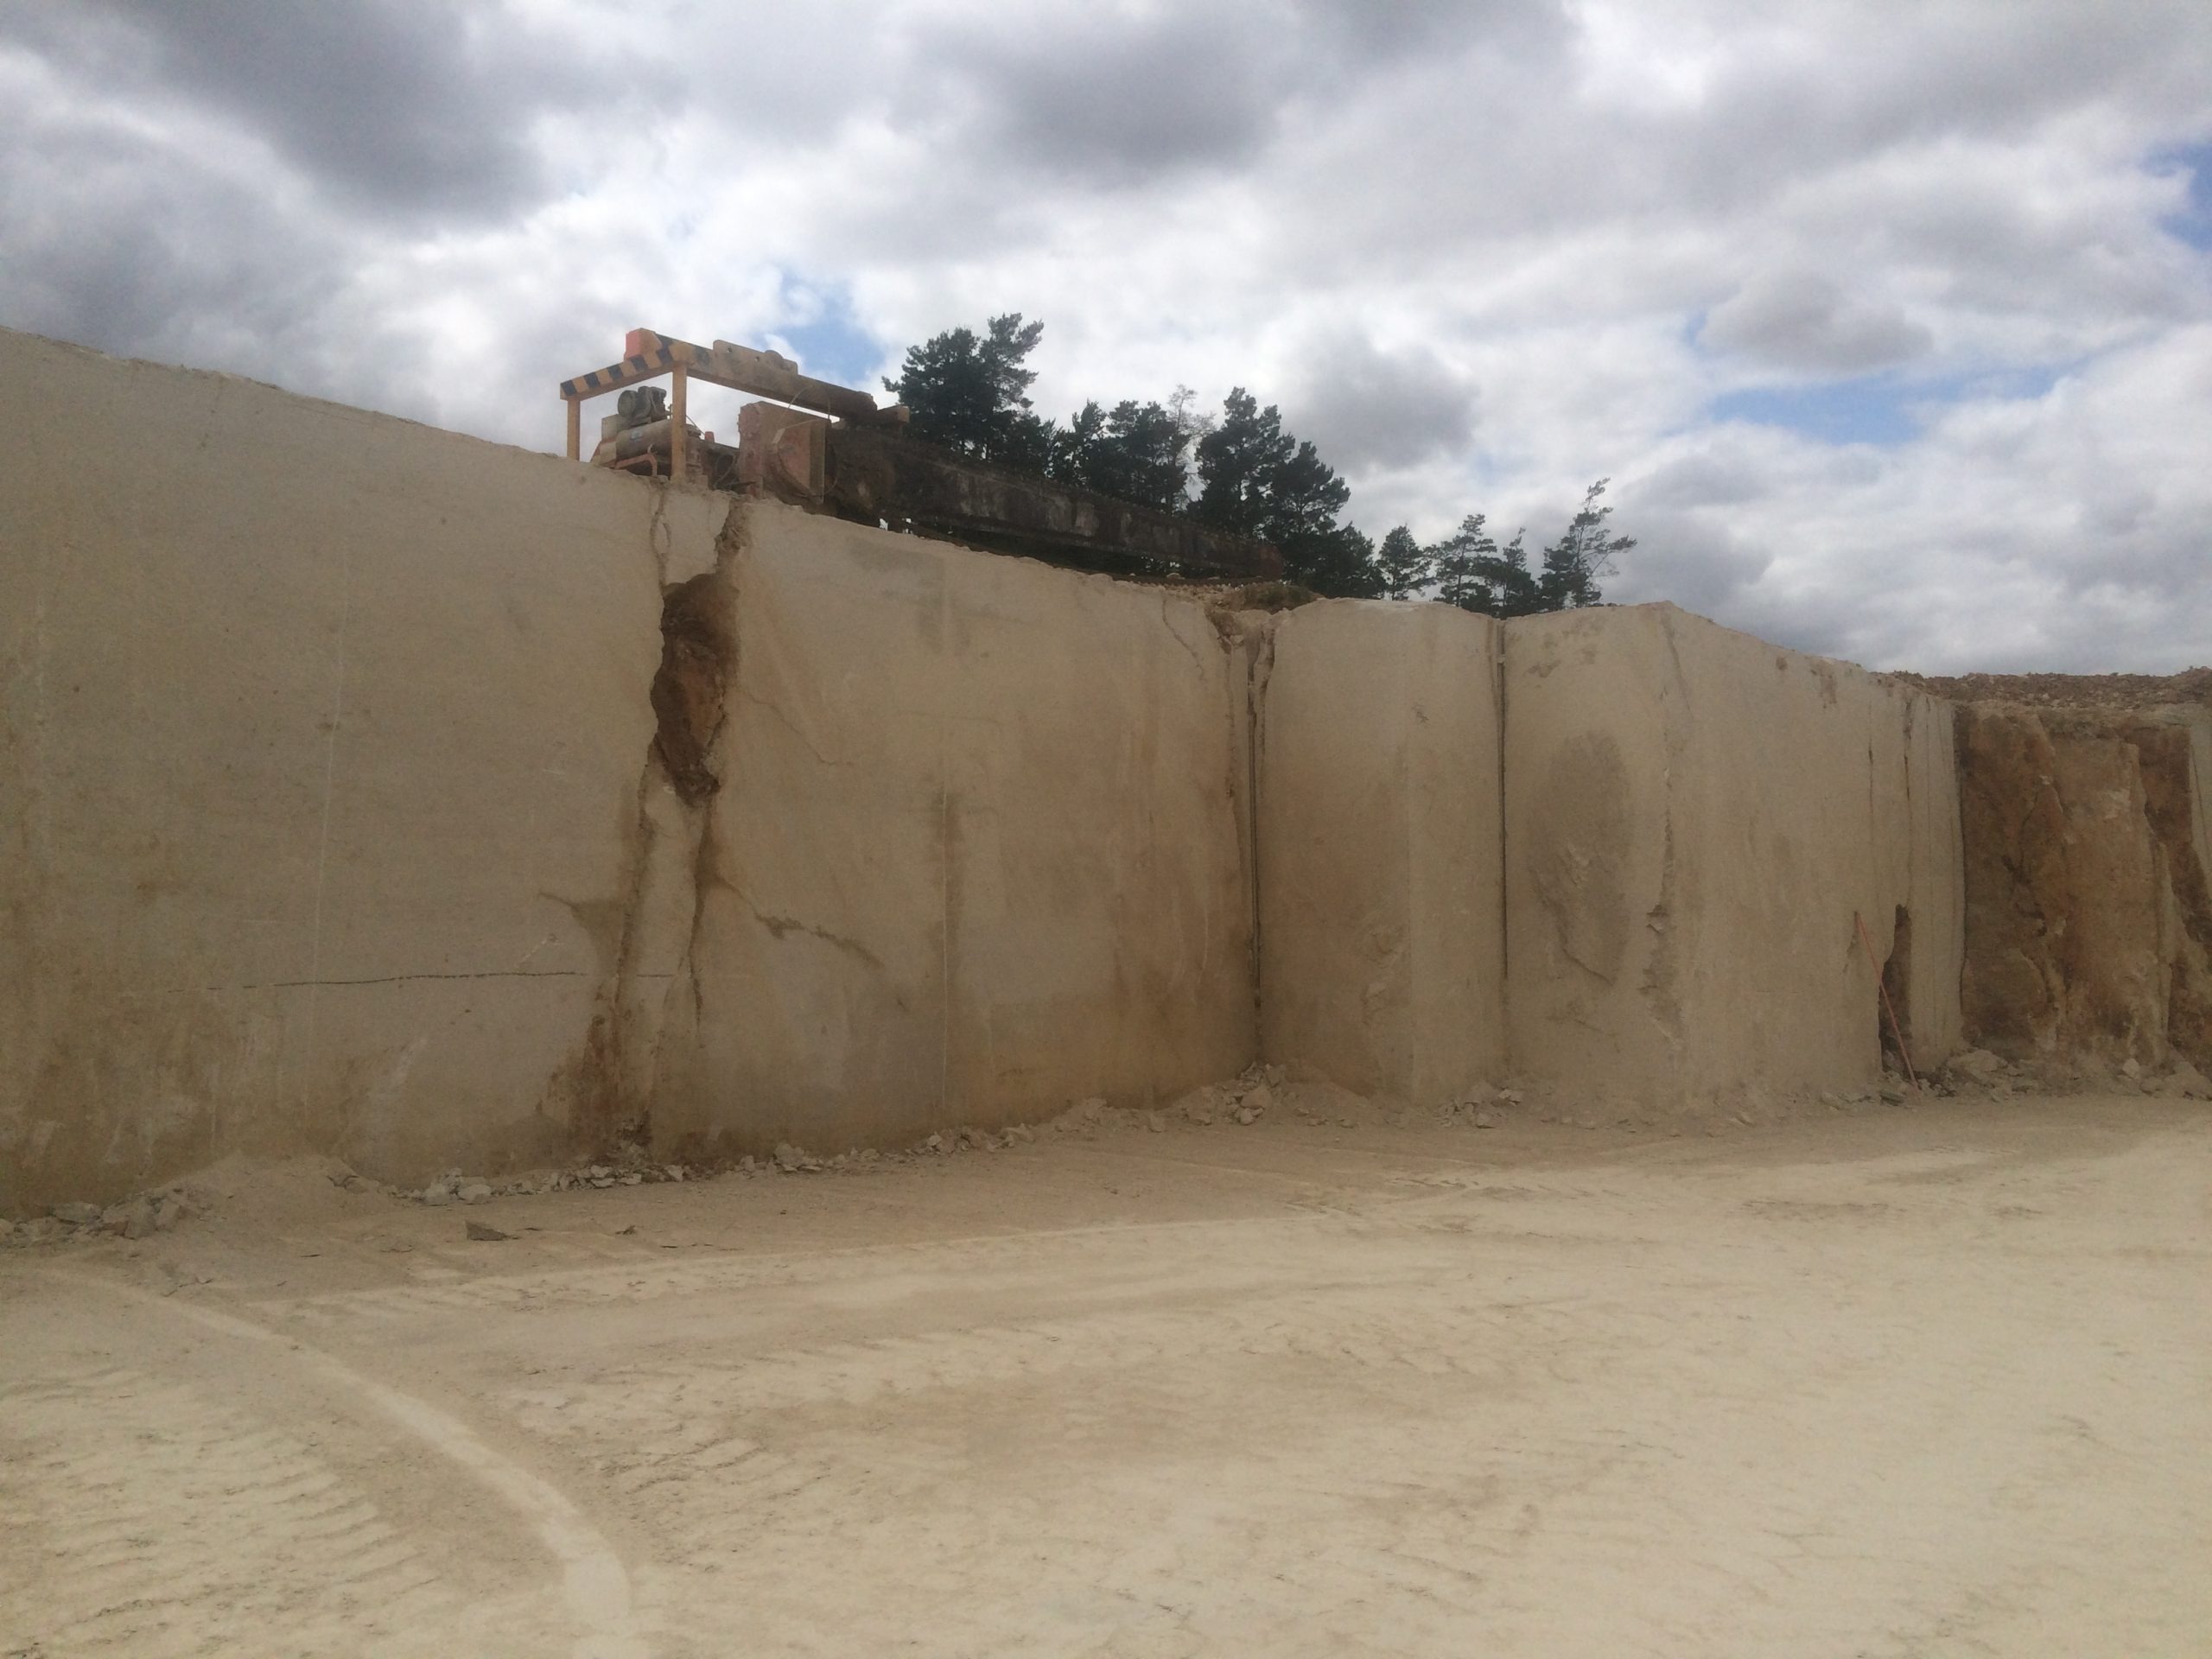 Ampilly French Limestone quarry